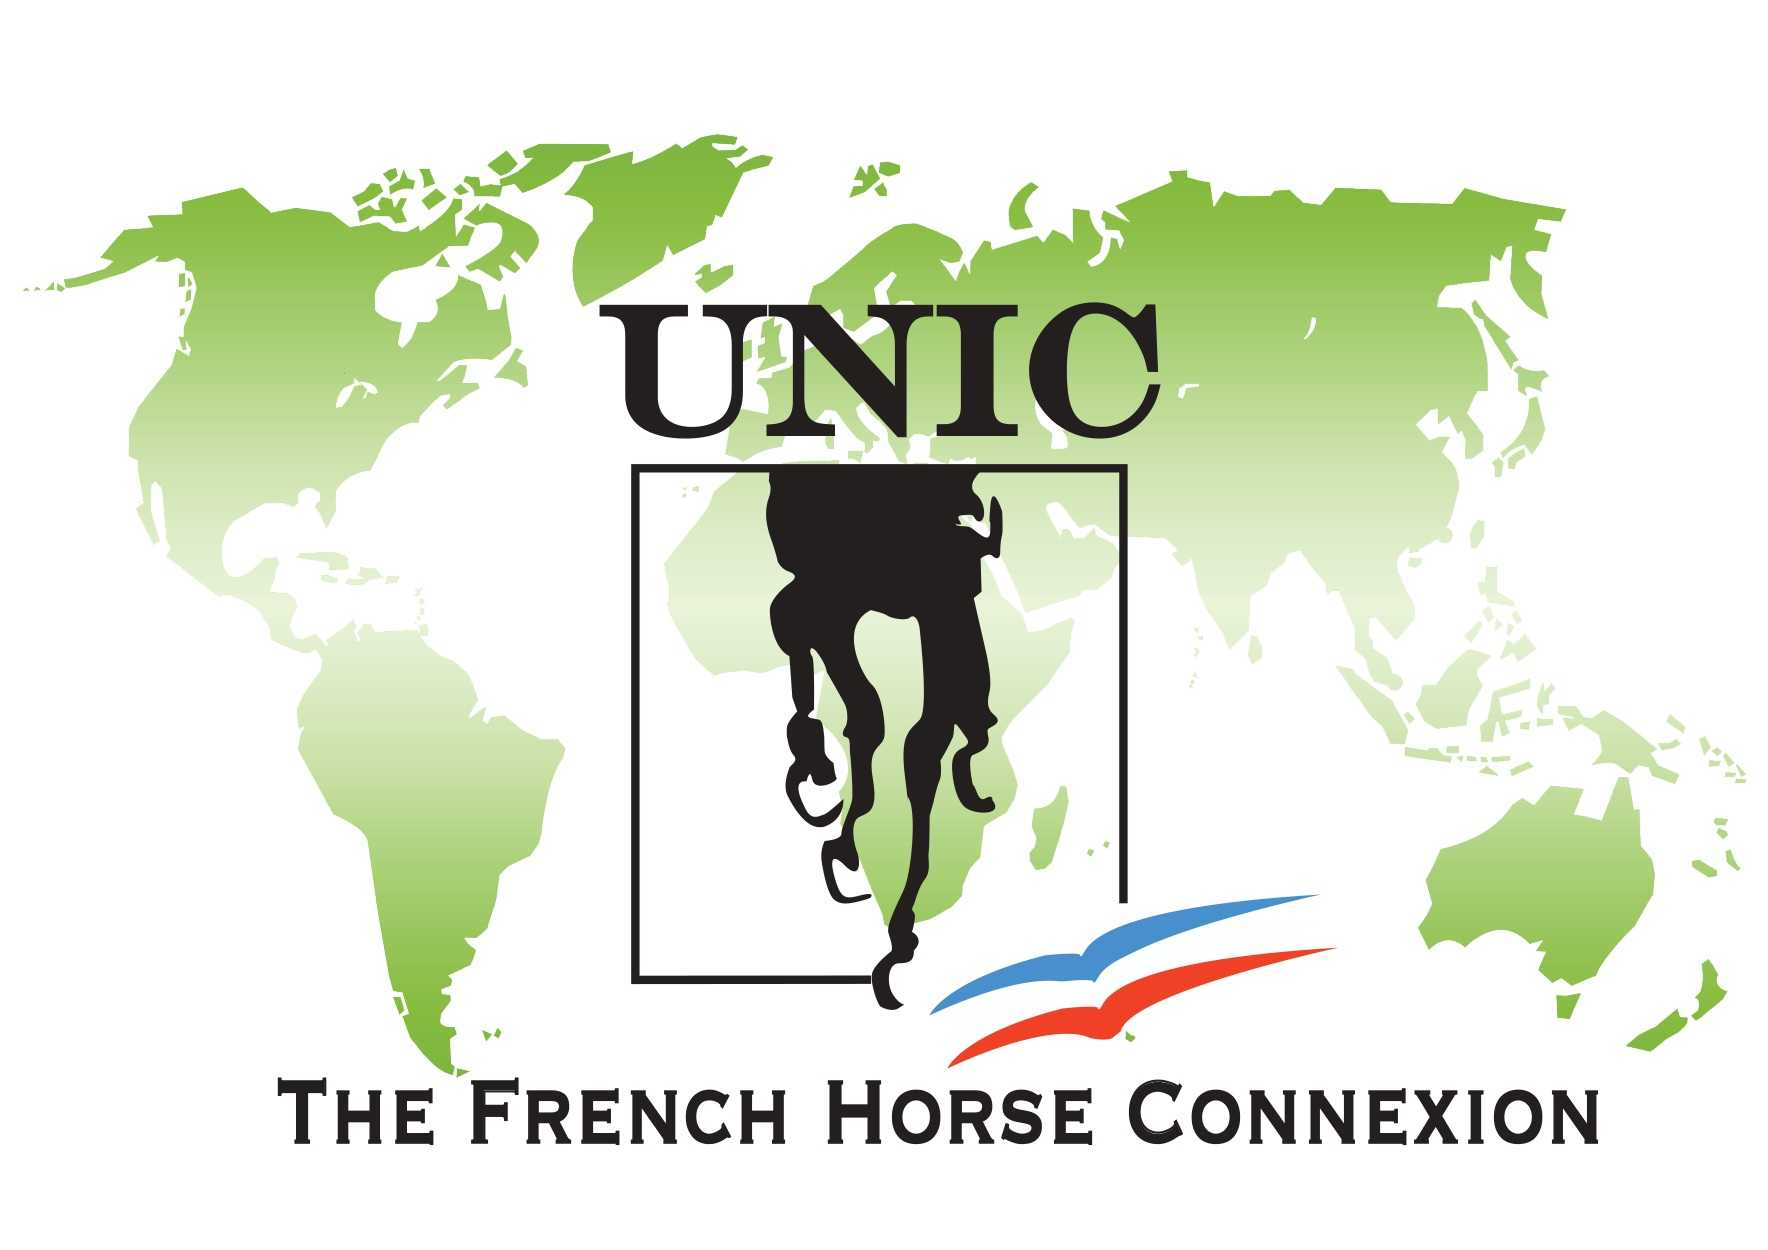 The French Horse Connexion